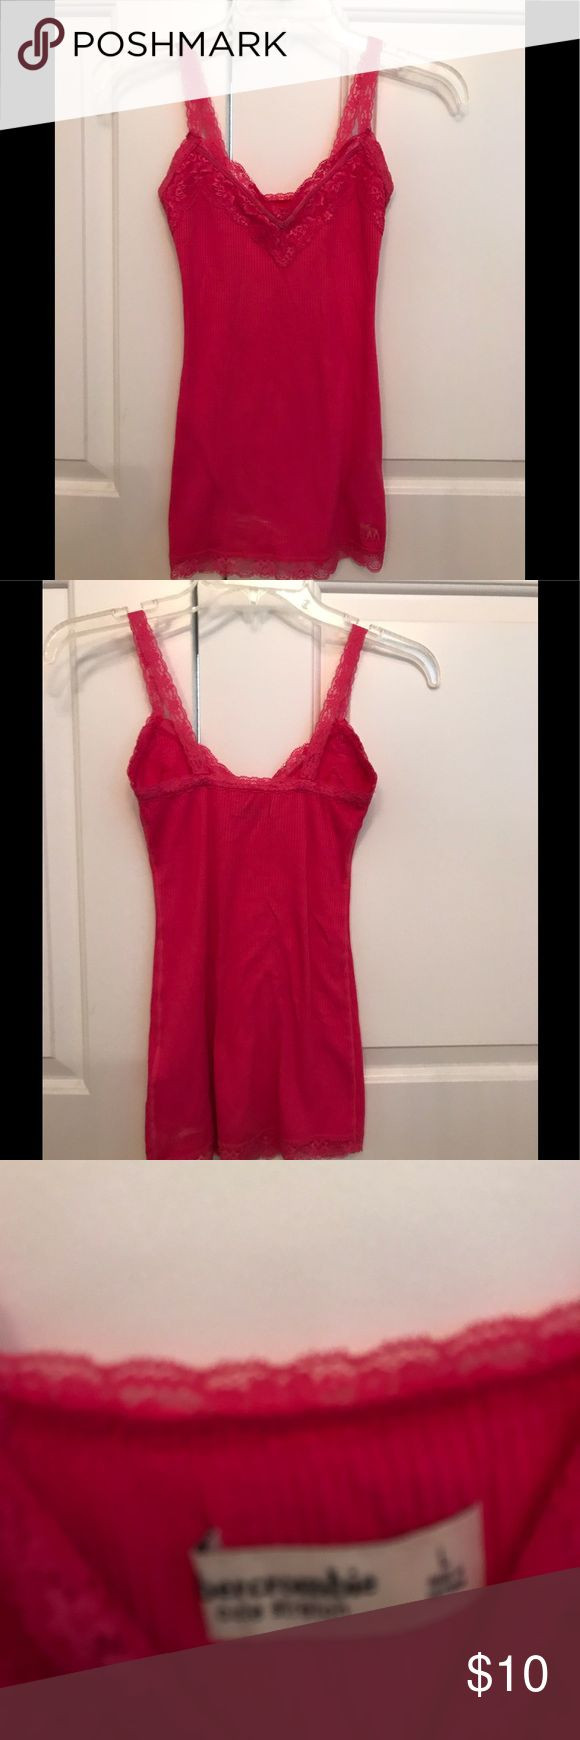 Abercrombie girl's cami in hot pink Camisole with lace, great for layering Shirts & Tops Camisoles